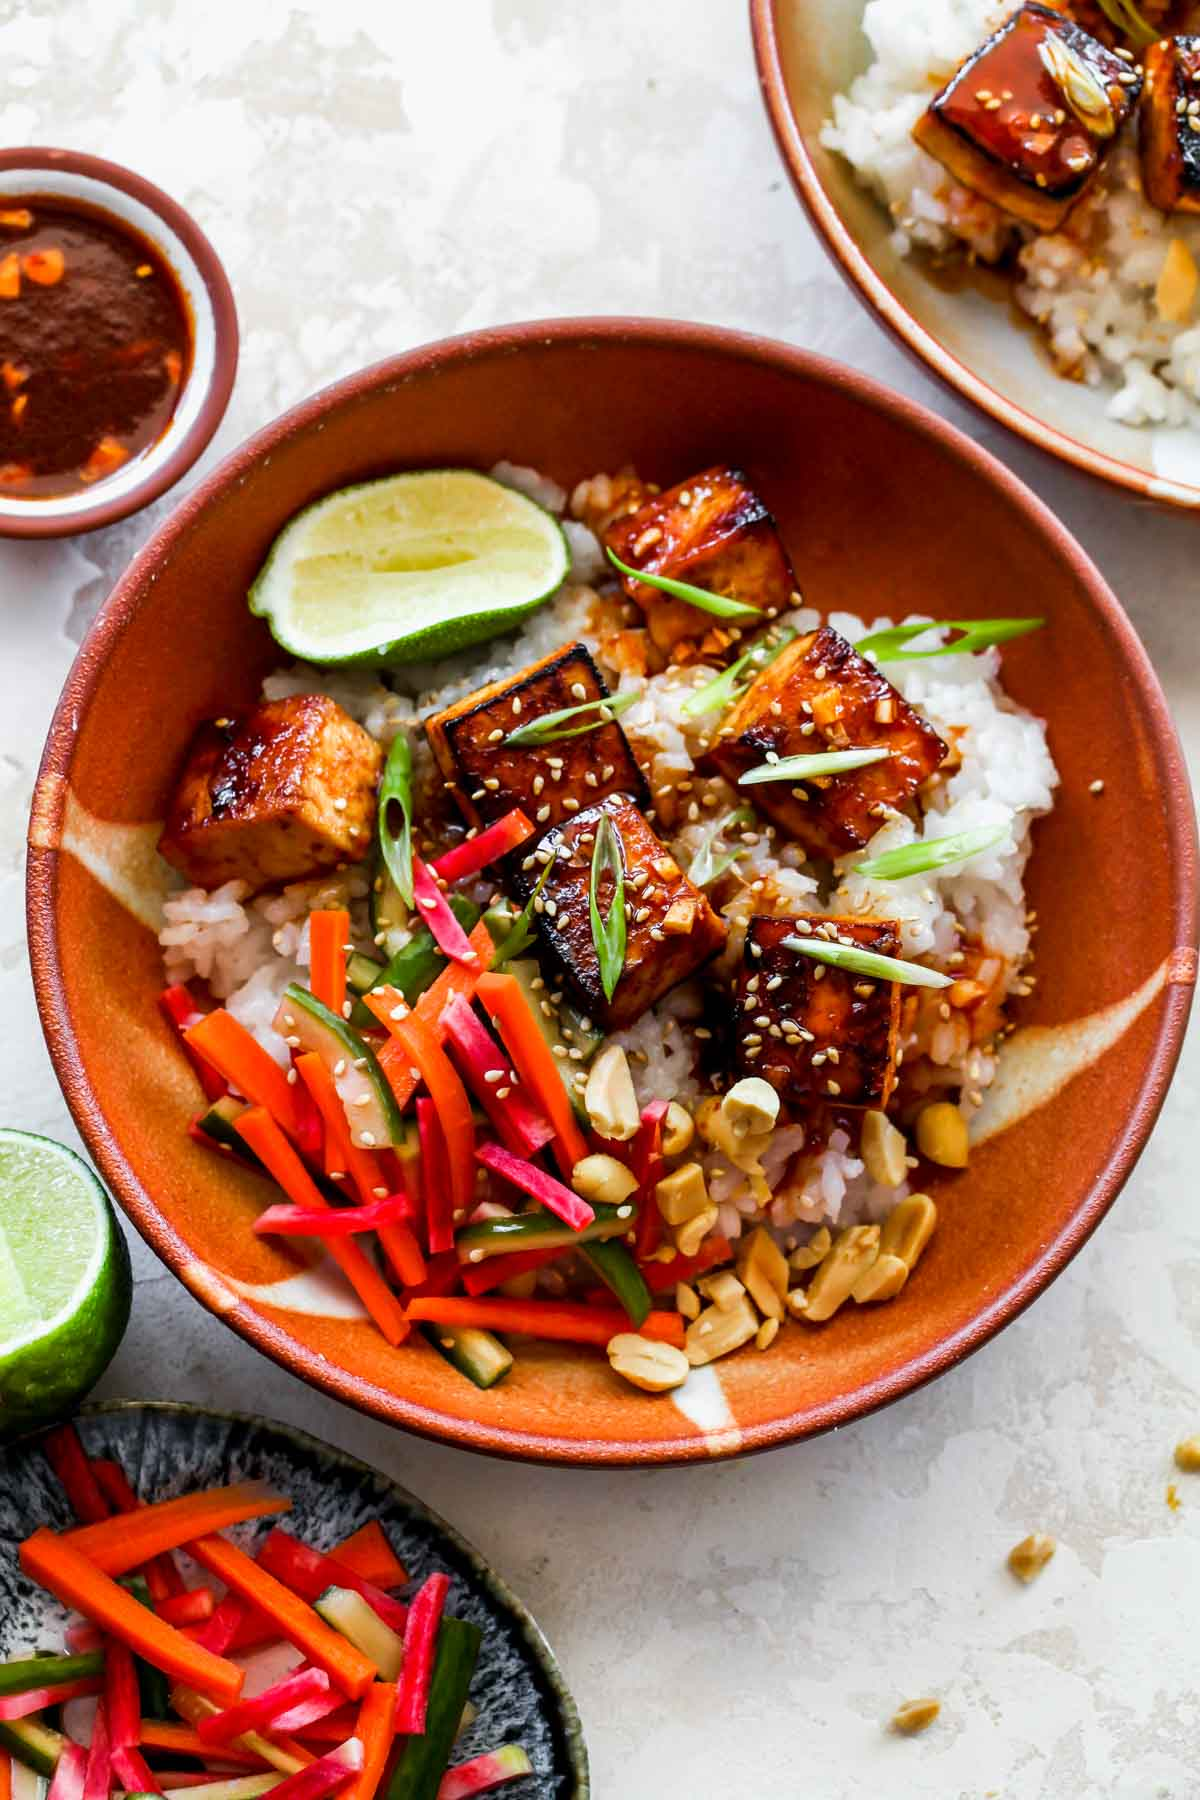 Gochujang marinated tofu and rice in a bowl topped with pickled veggies